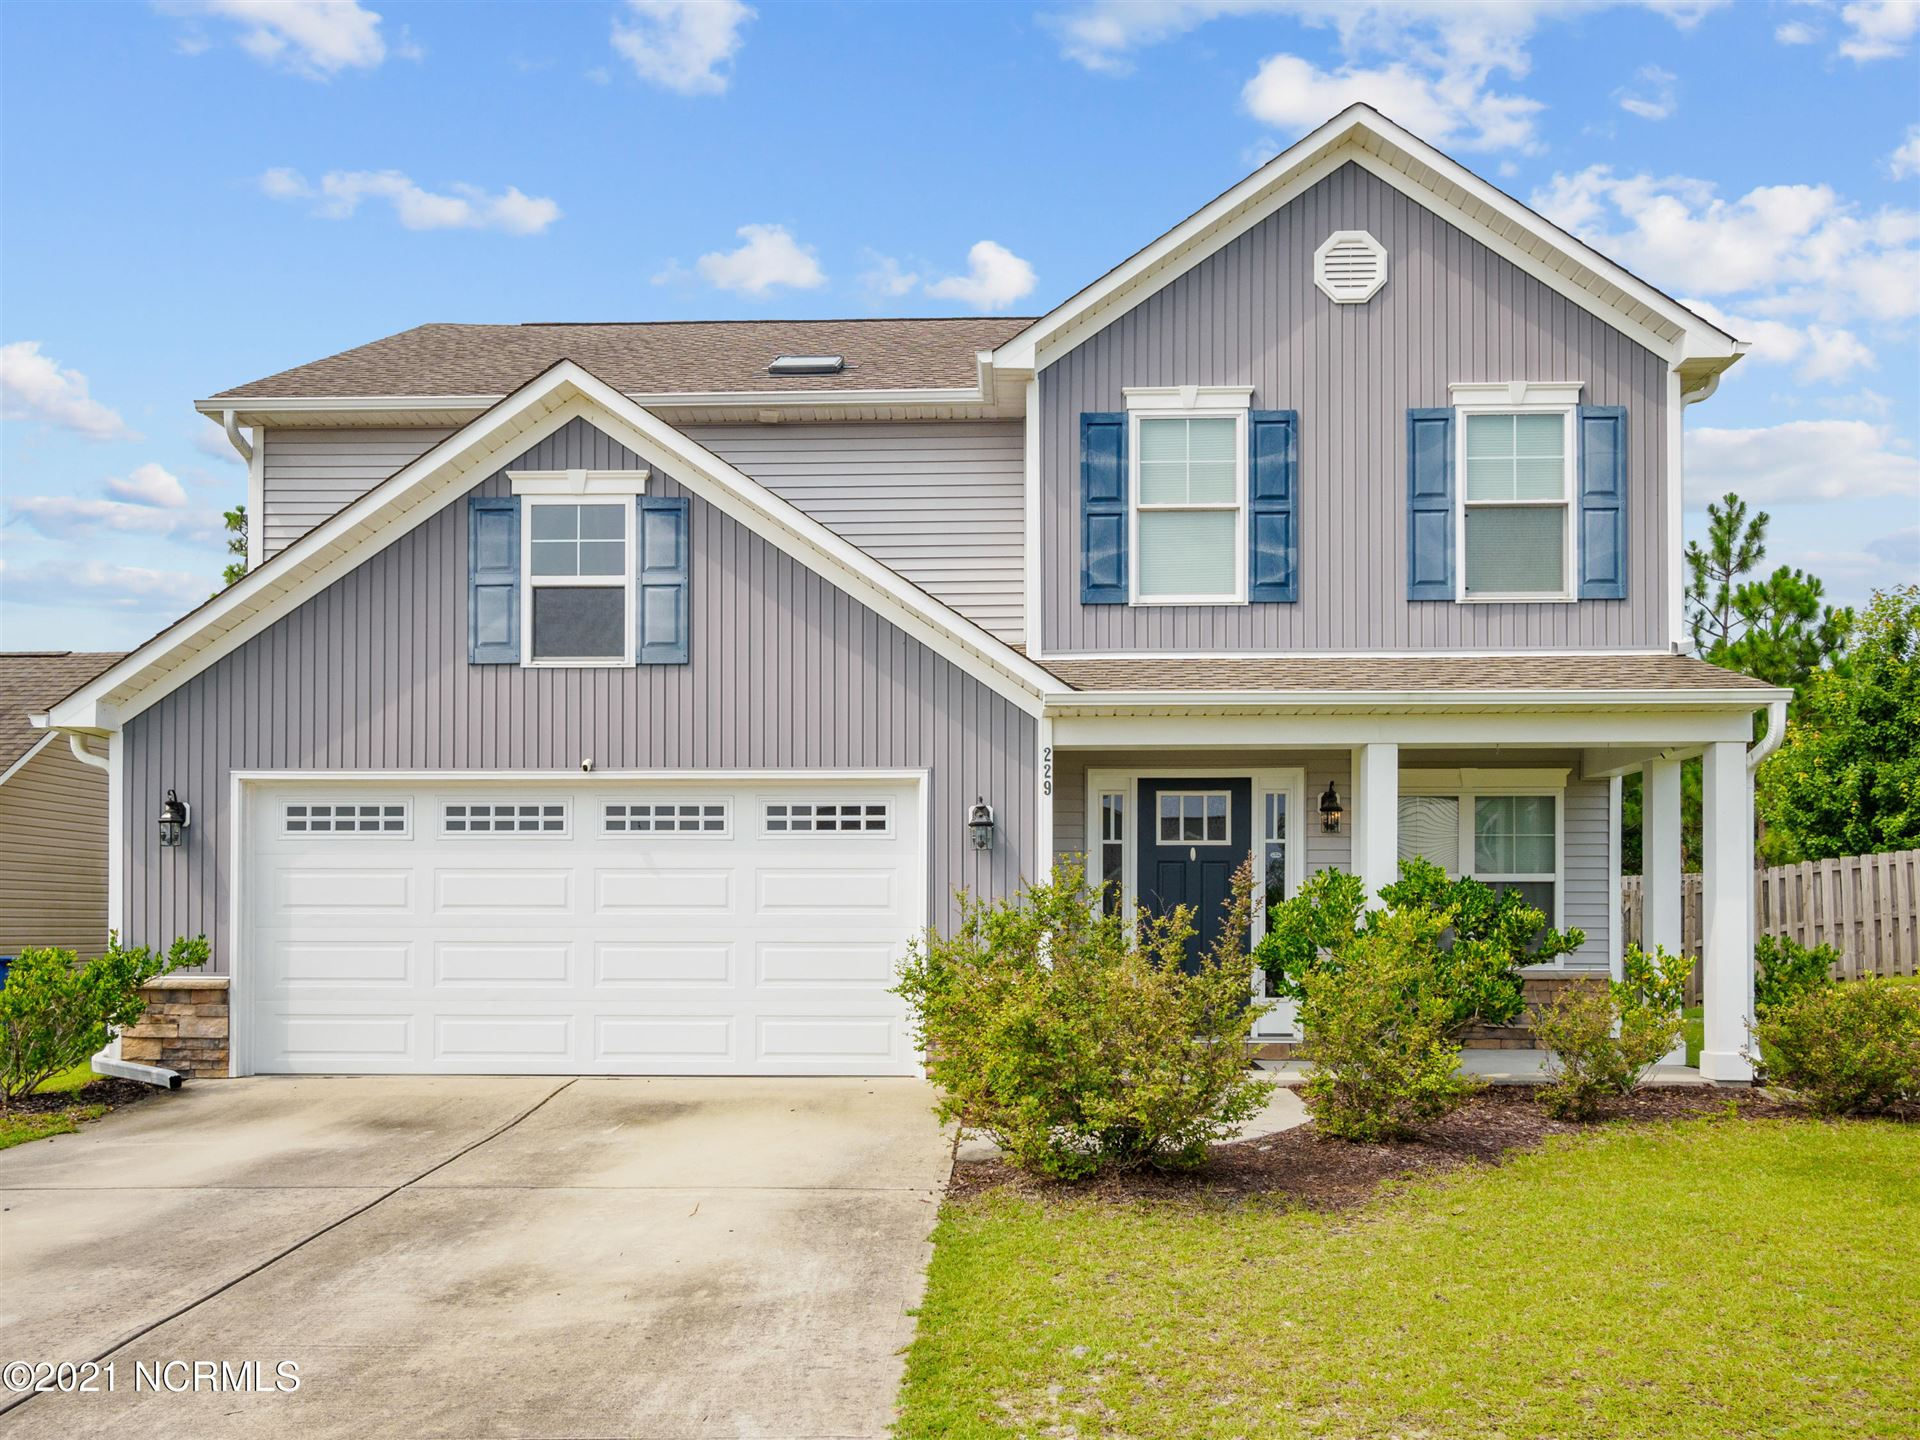 Photo for 229 Belvedere Drive, Holly Ridge, NC 28445 (MLS # 100283863)